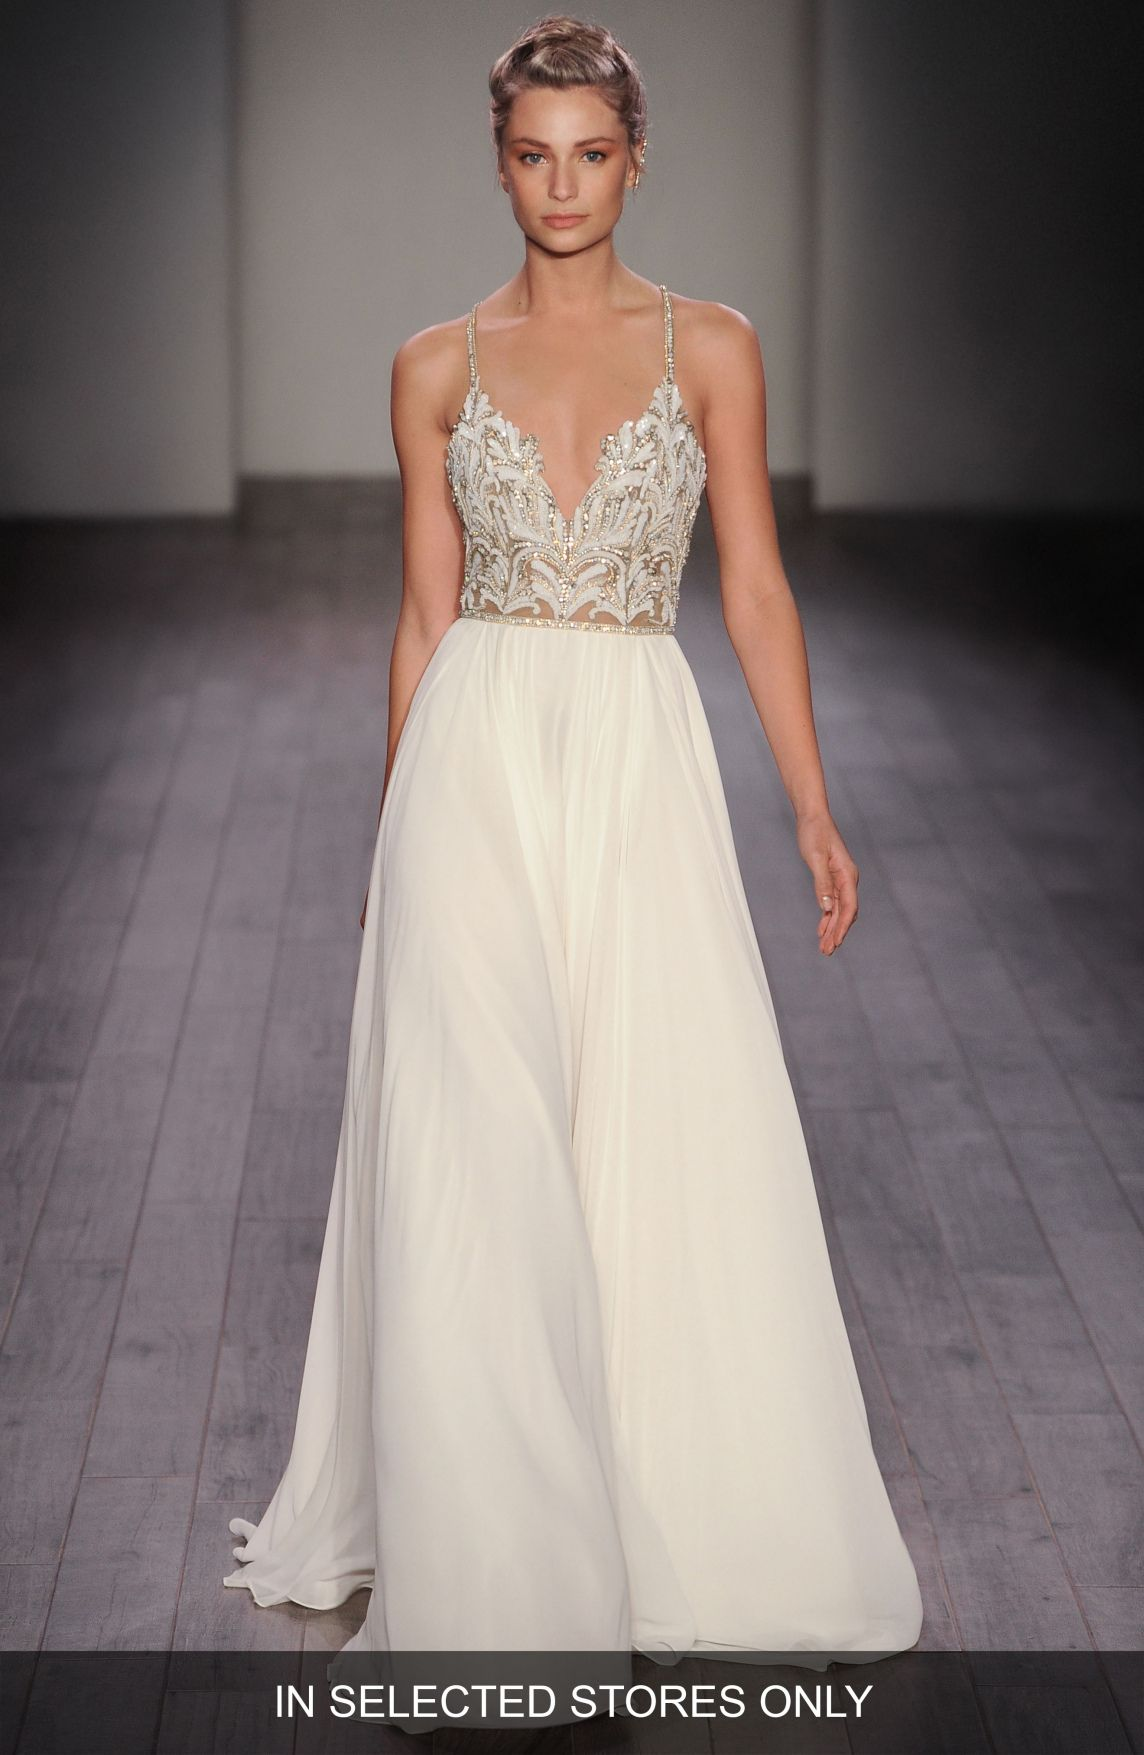 How much are hayley paige wedding dresses   How Much are Hayley Paige Wedding Dresses  Womenus Dresses for